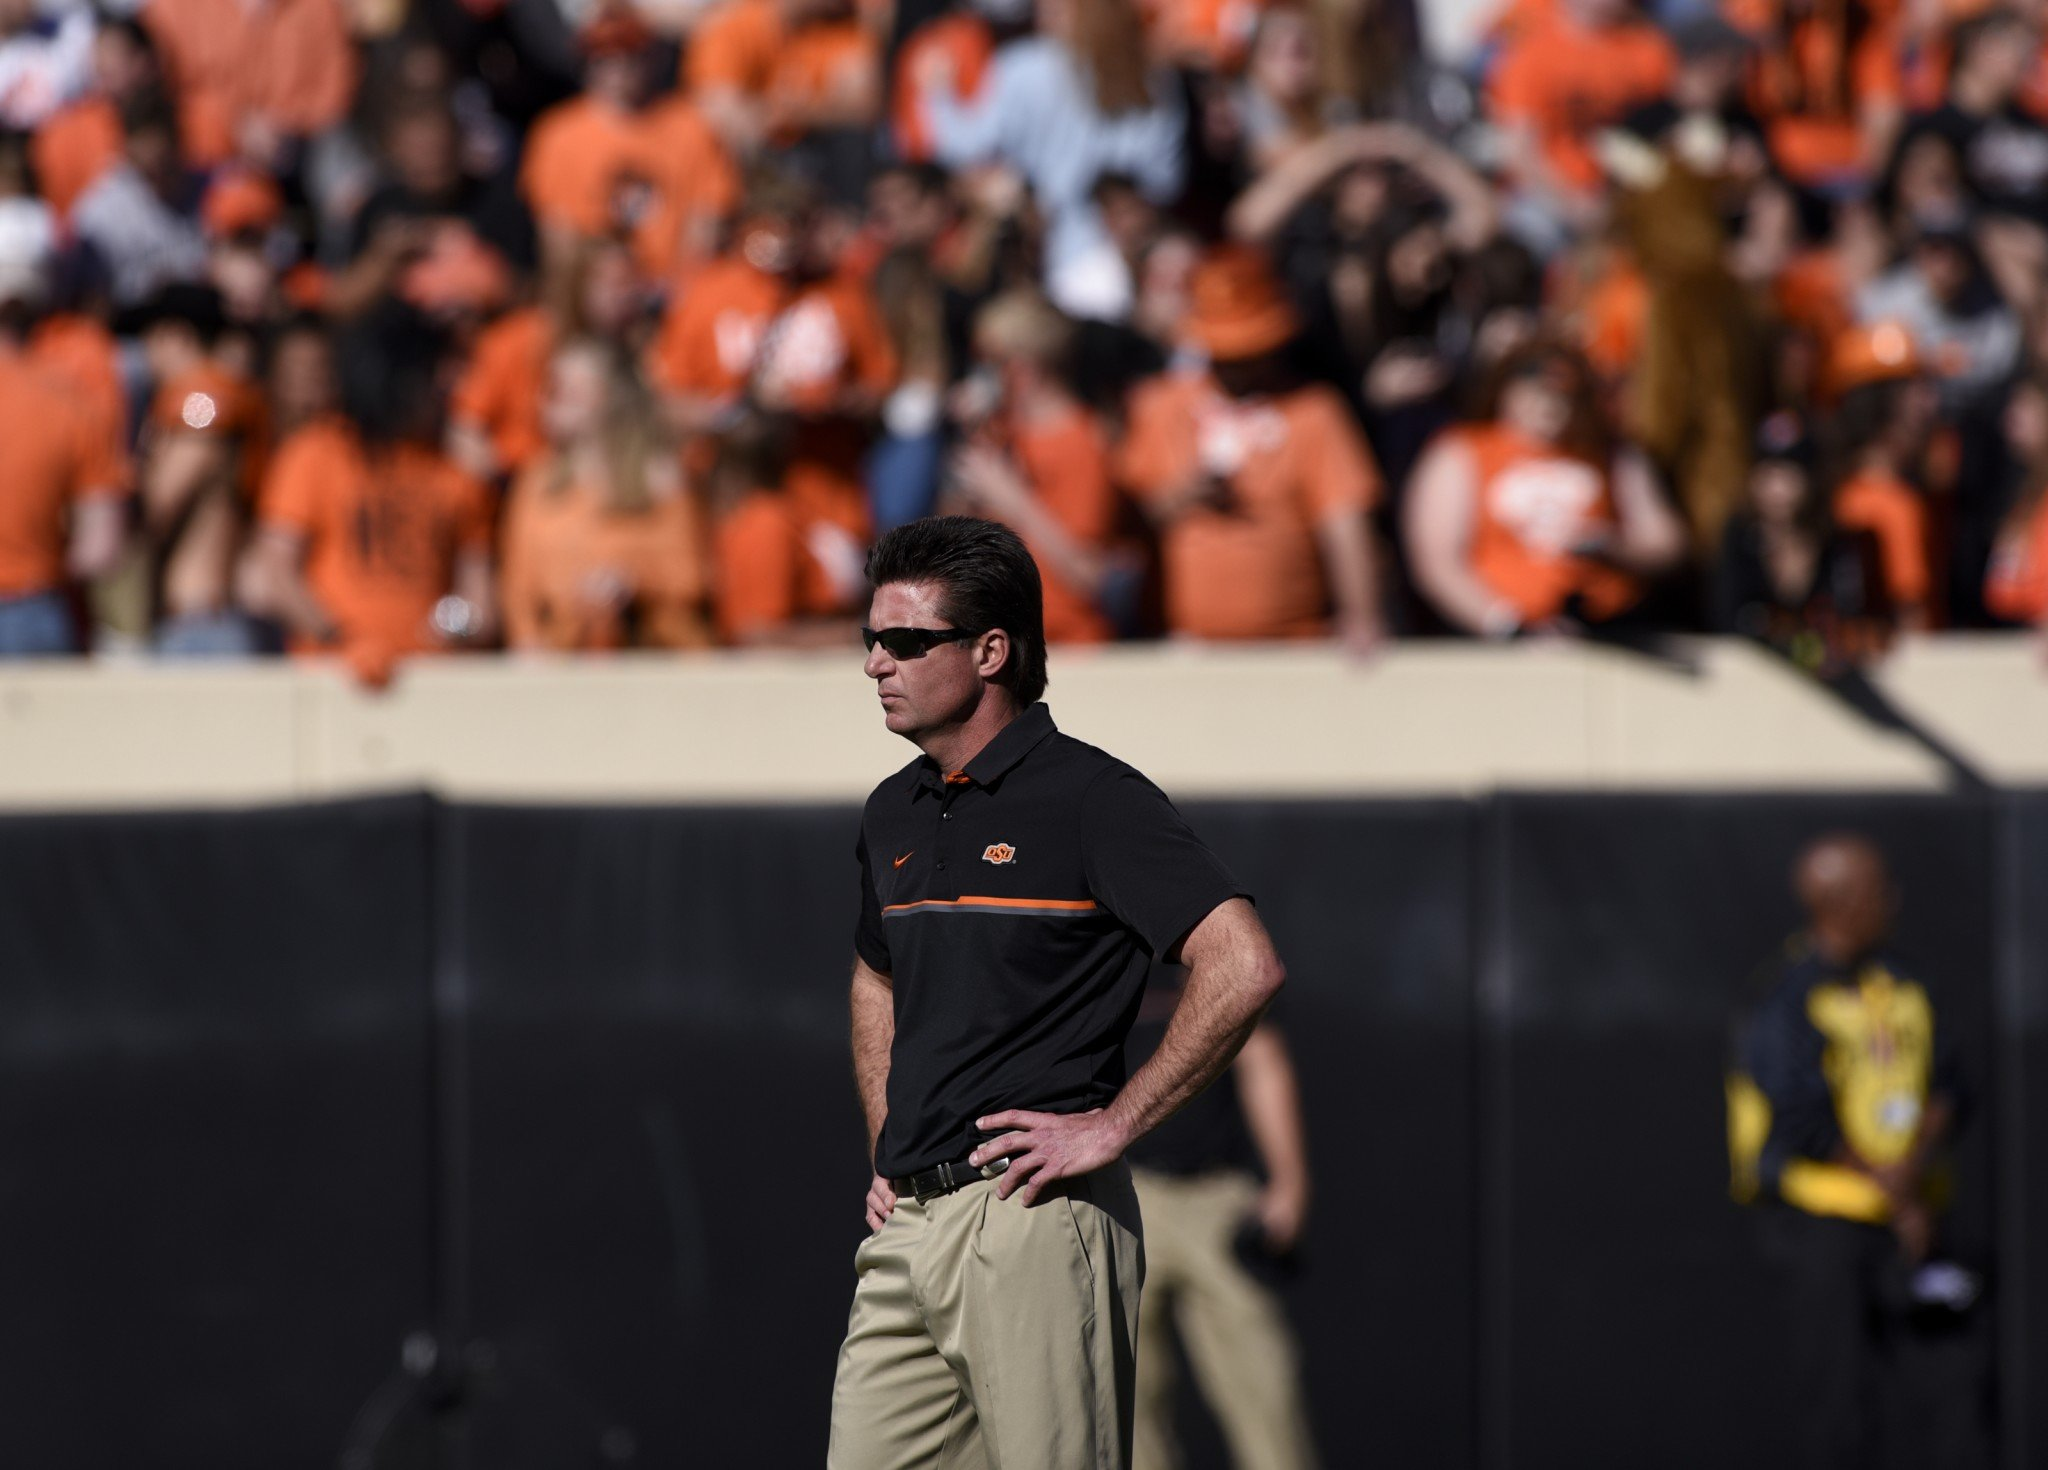 Oklahoma State head coach Mike Gundy watches his team prractice before the start of an NCAA college football game with Texas Tech in Stillwater, Okla., Saturday, Nov. 12, 2016.(AP Photo/Brody Schmidt)